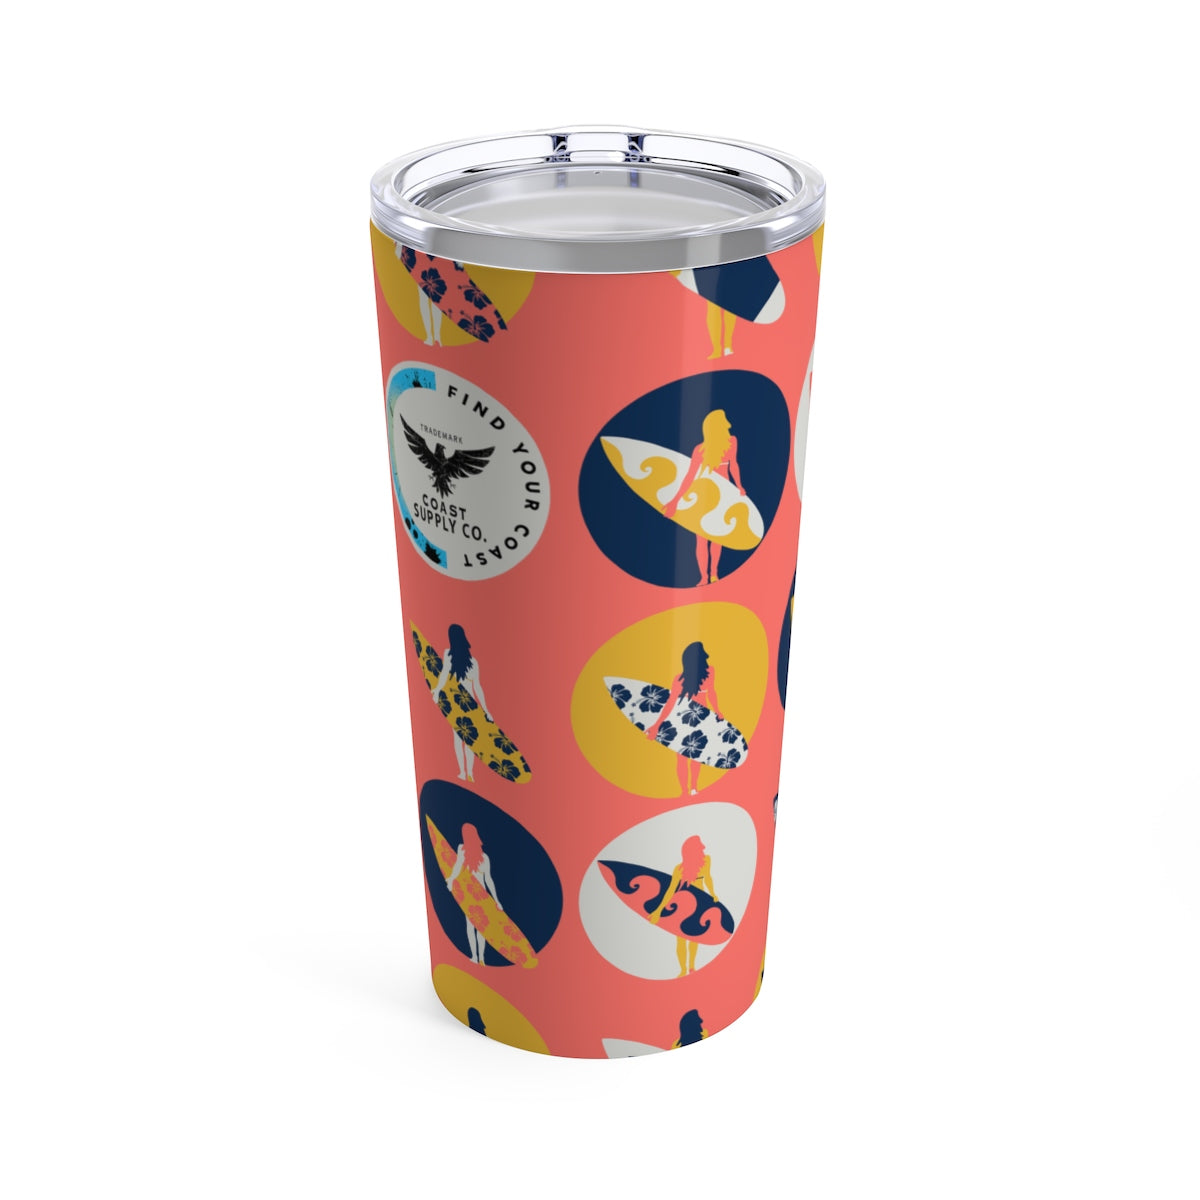 Find Your Coast 20 oz Stainless Steel Surfer Girl Art Stainless Steel Tumbler - Find Your Coast Supply Co.